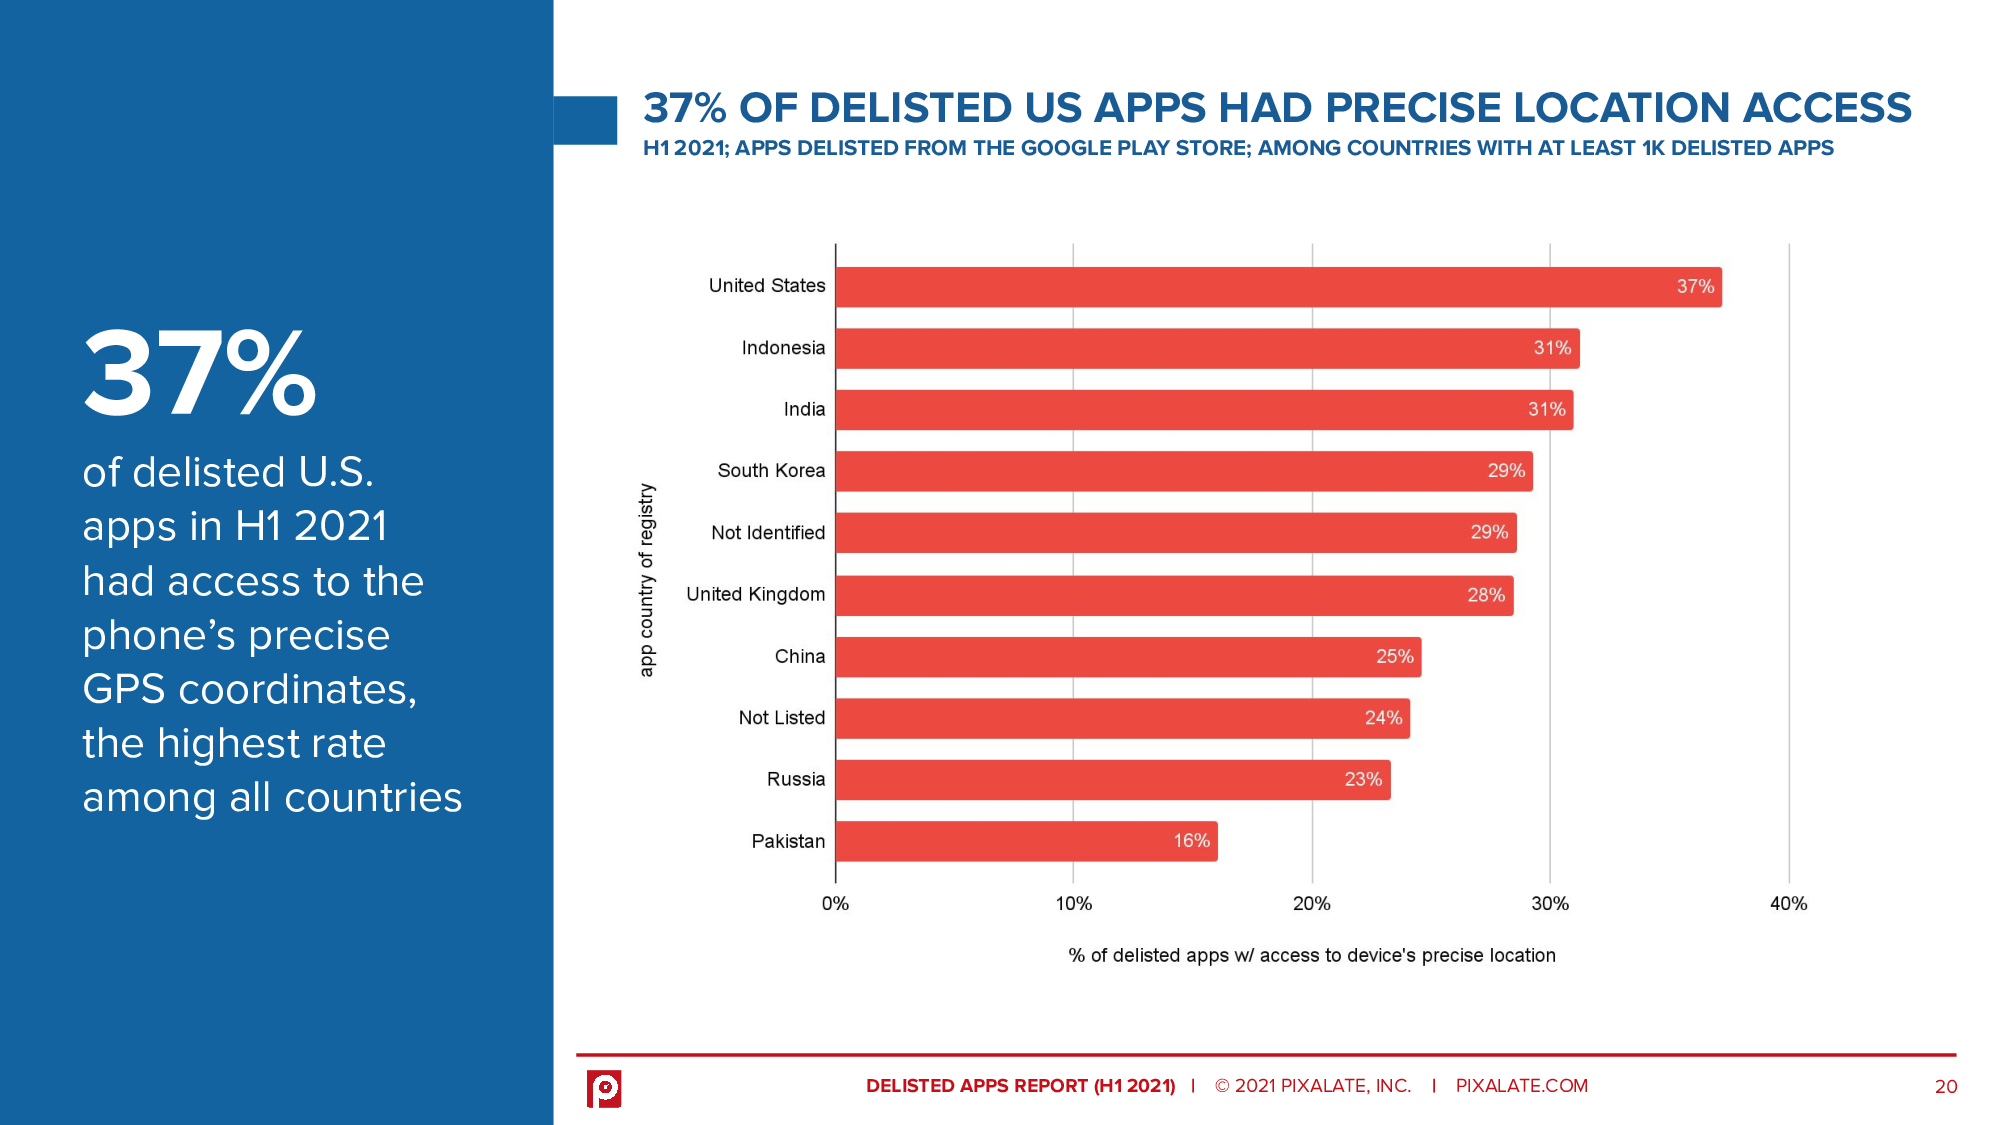 37% of delisted U.S. apps in H1 2021 had access to the phone's precise GPS coordinates, the highest rate among all countries